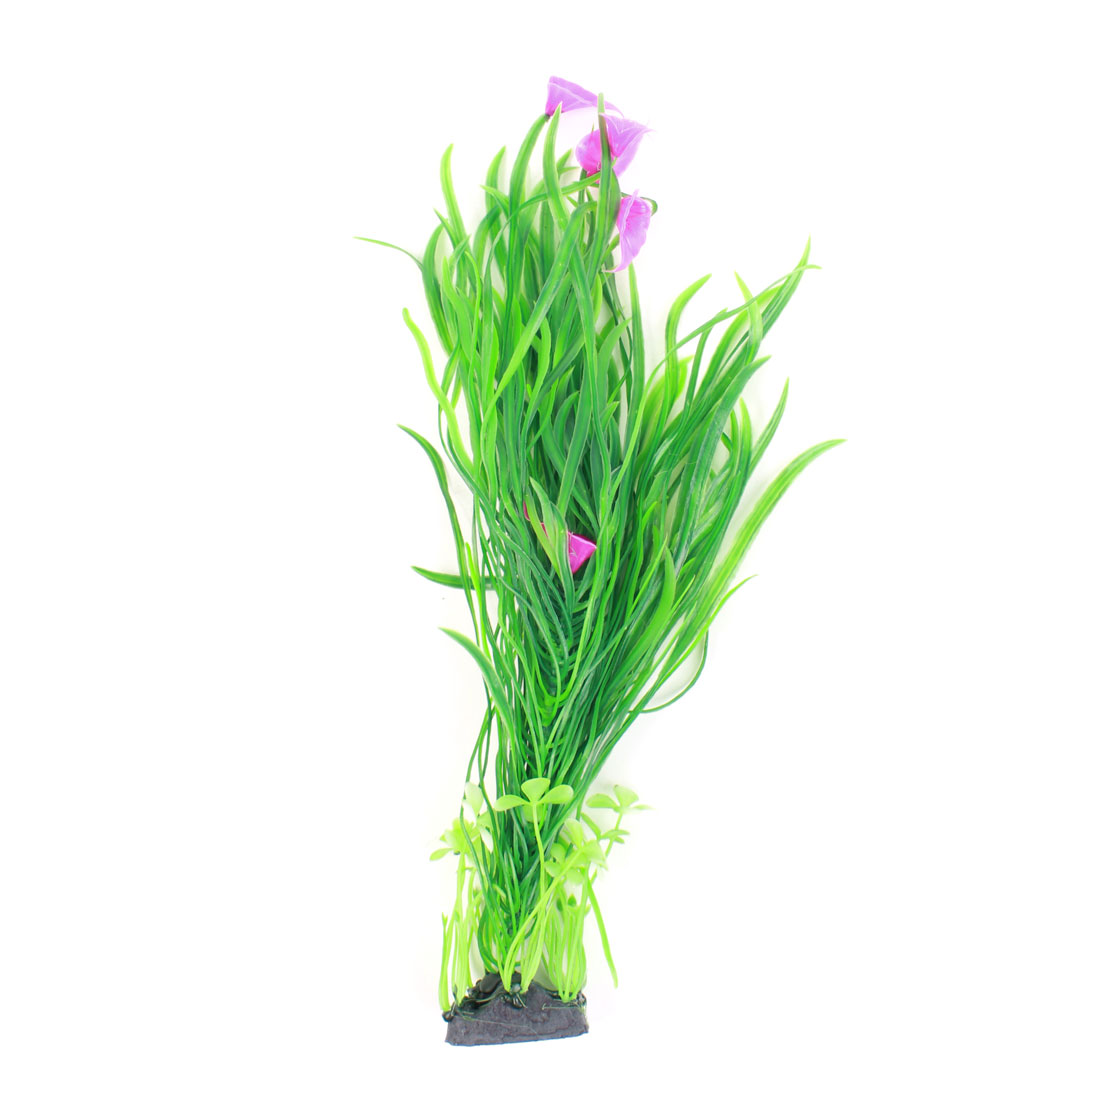 "Fish Tank Aquarium Green Purple Plastic Water Grass Plant Flower Ornament 16"" Height"